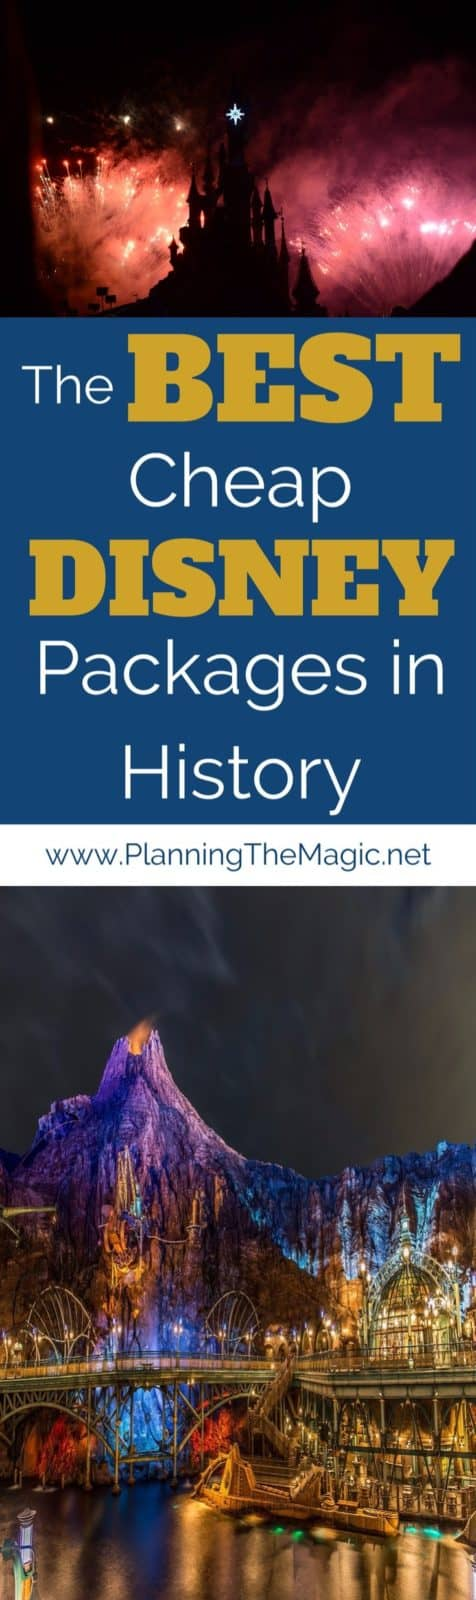 Our Walt Disney World trip planning guide includes all the tips you need for a vacation, whether you're a first-timer or regular. We cover how to save money and time, avoid crowds, choose where to eat, which rides to do, and fully plan your Disney itinerary for your Florida vacation.